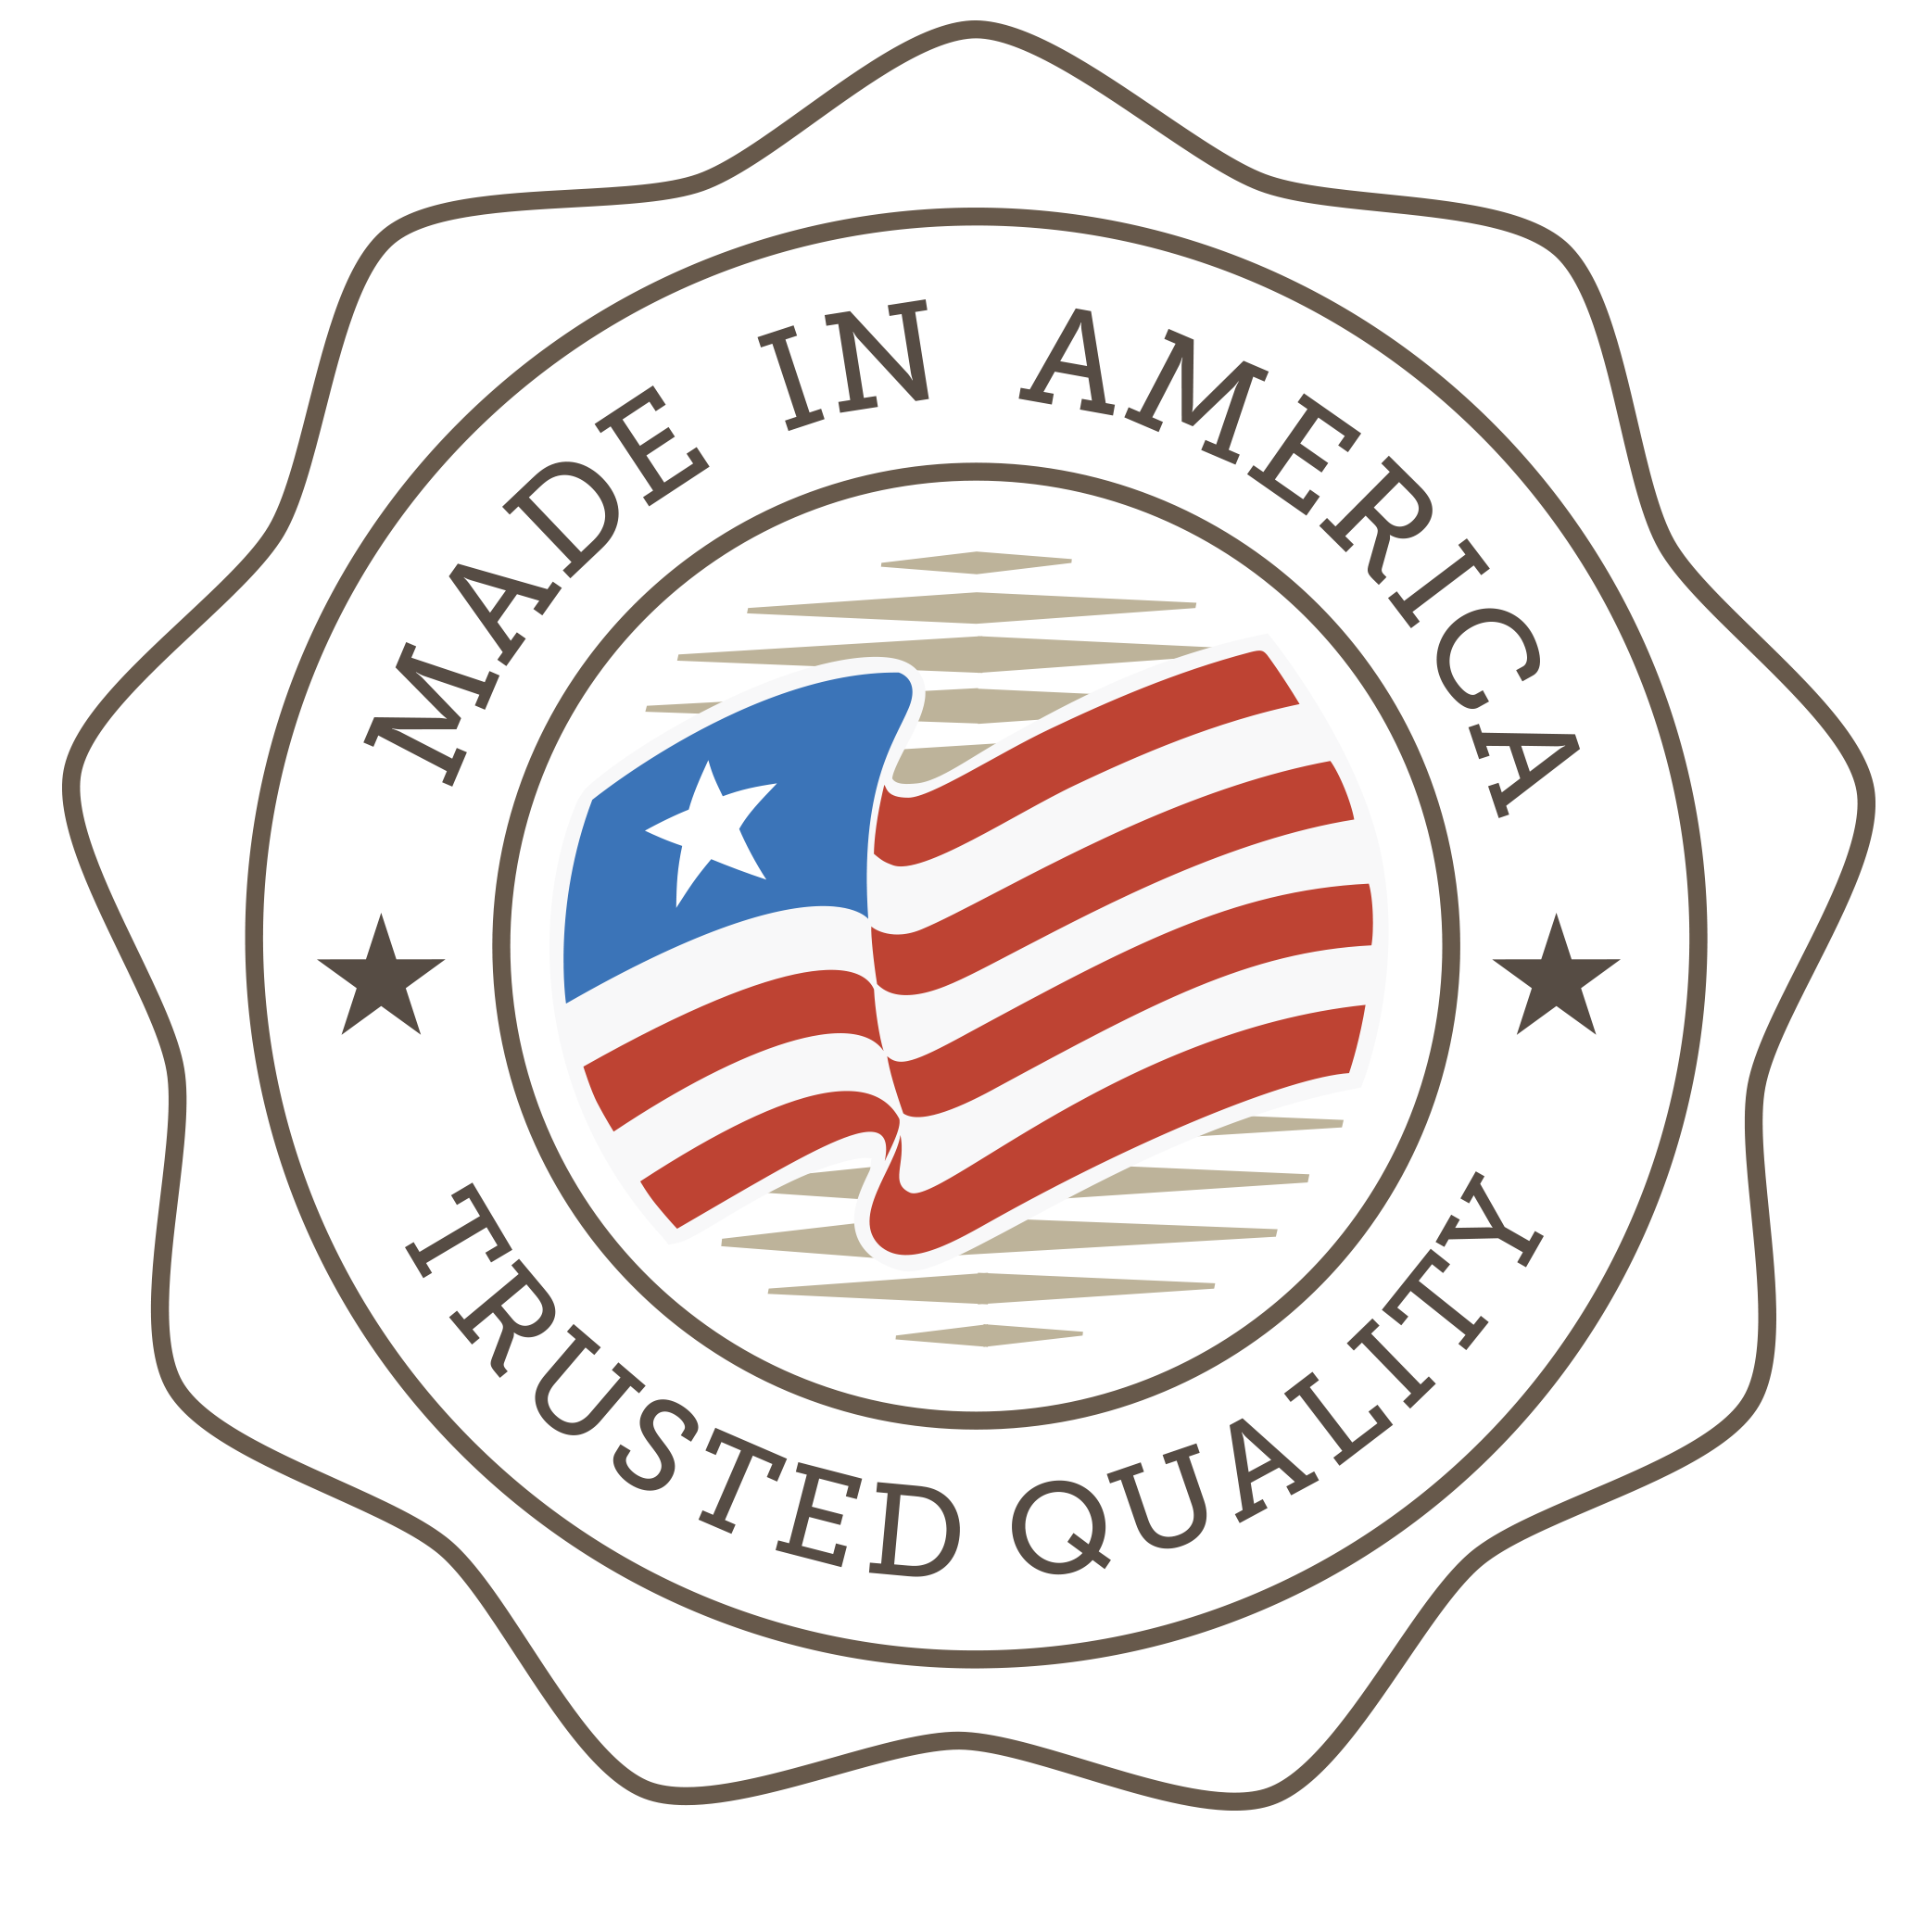 made in america trusted quality craftsmanship highest standards finest ingredients massachussetts